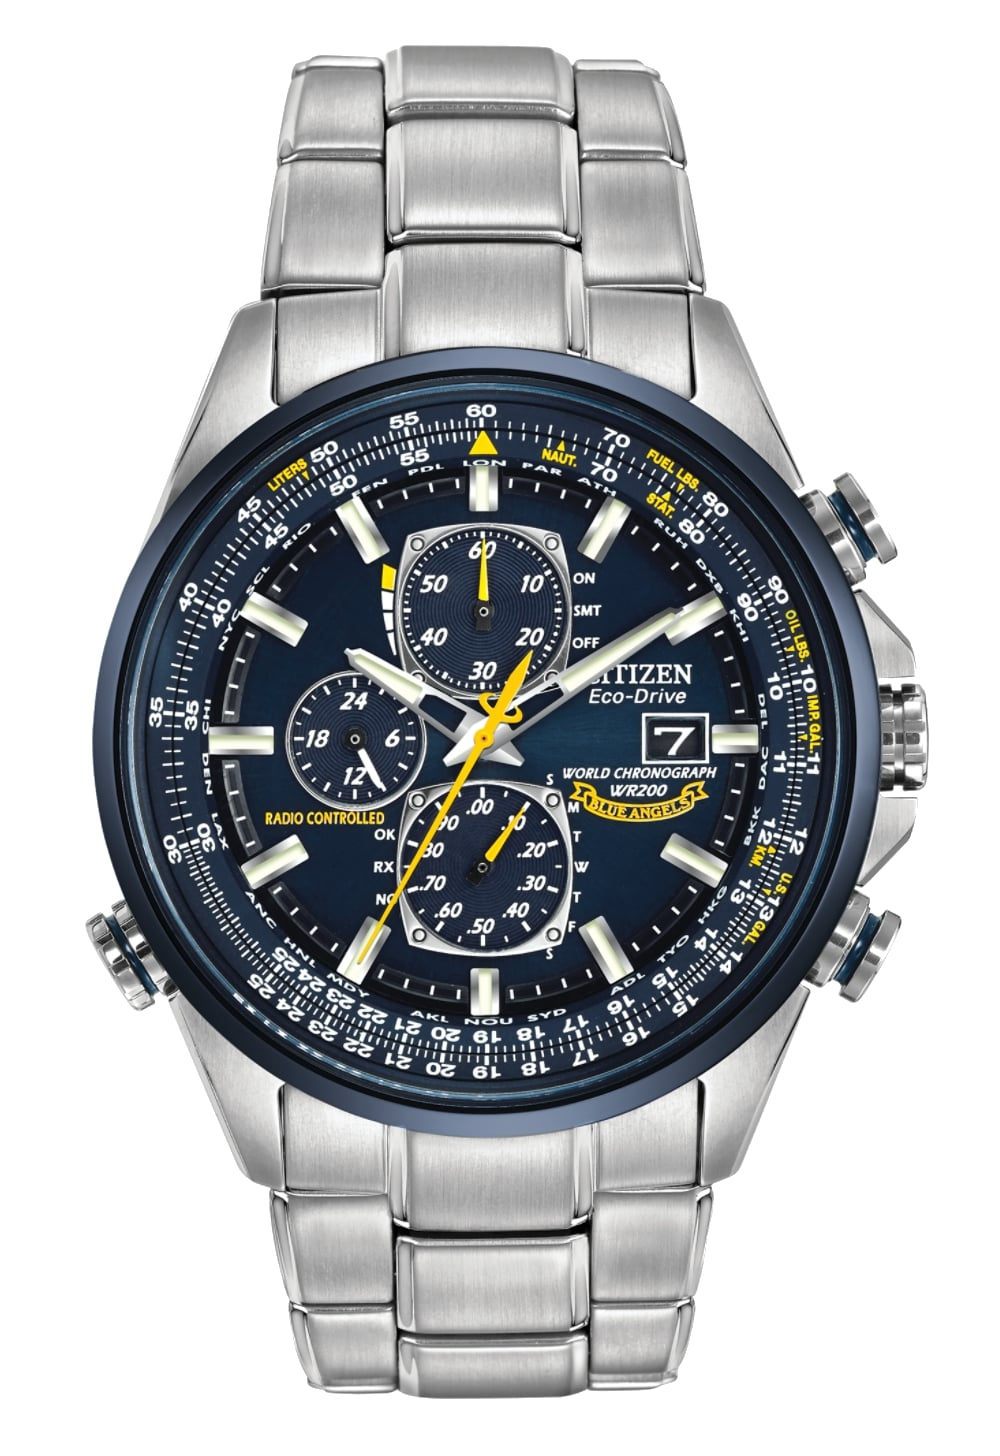 Citizen watch review on atomic timekeeping World Chronograph A-T